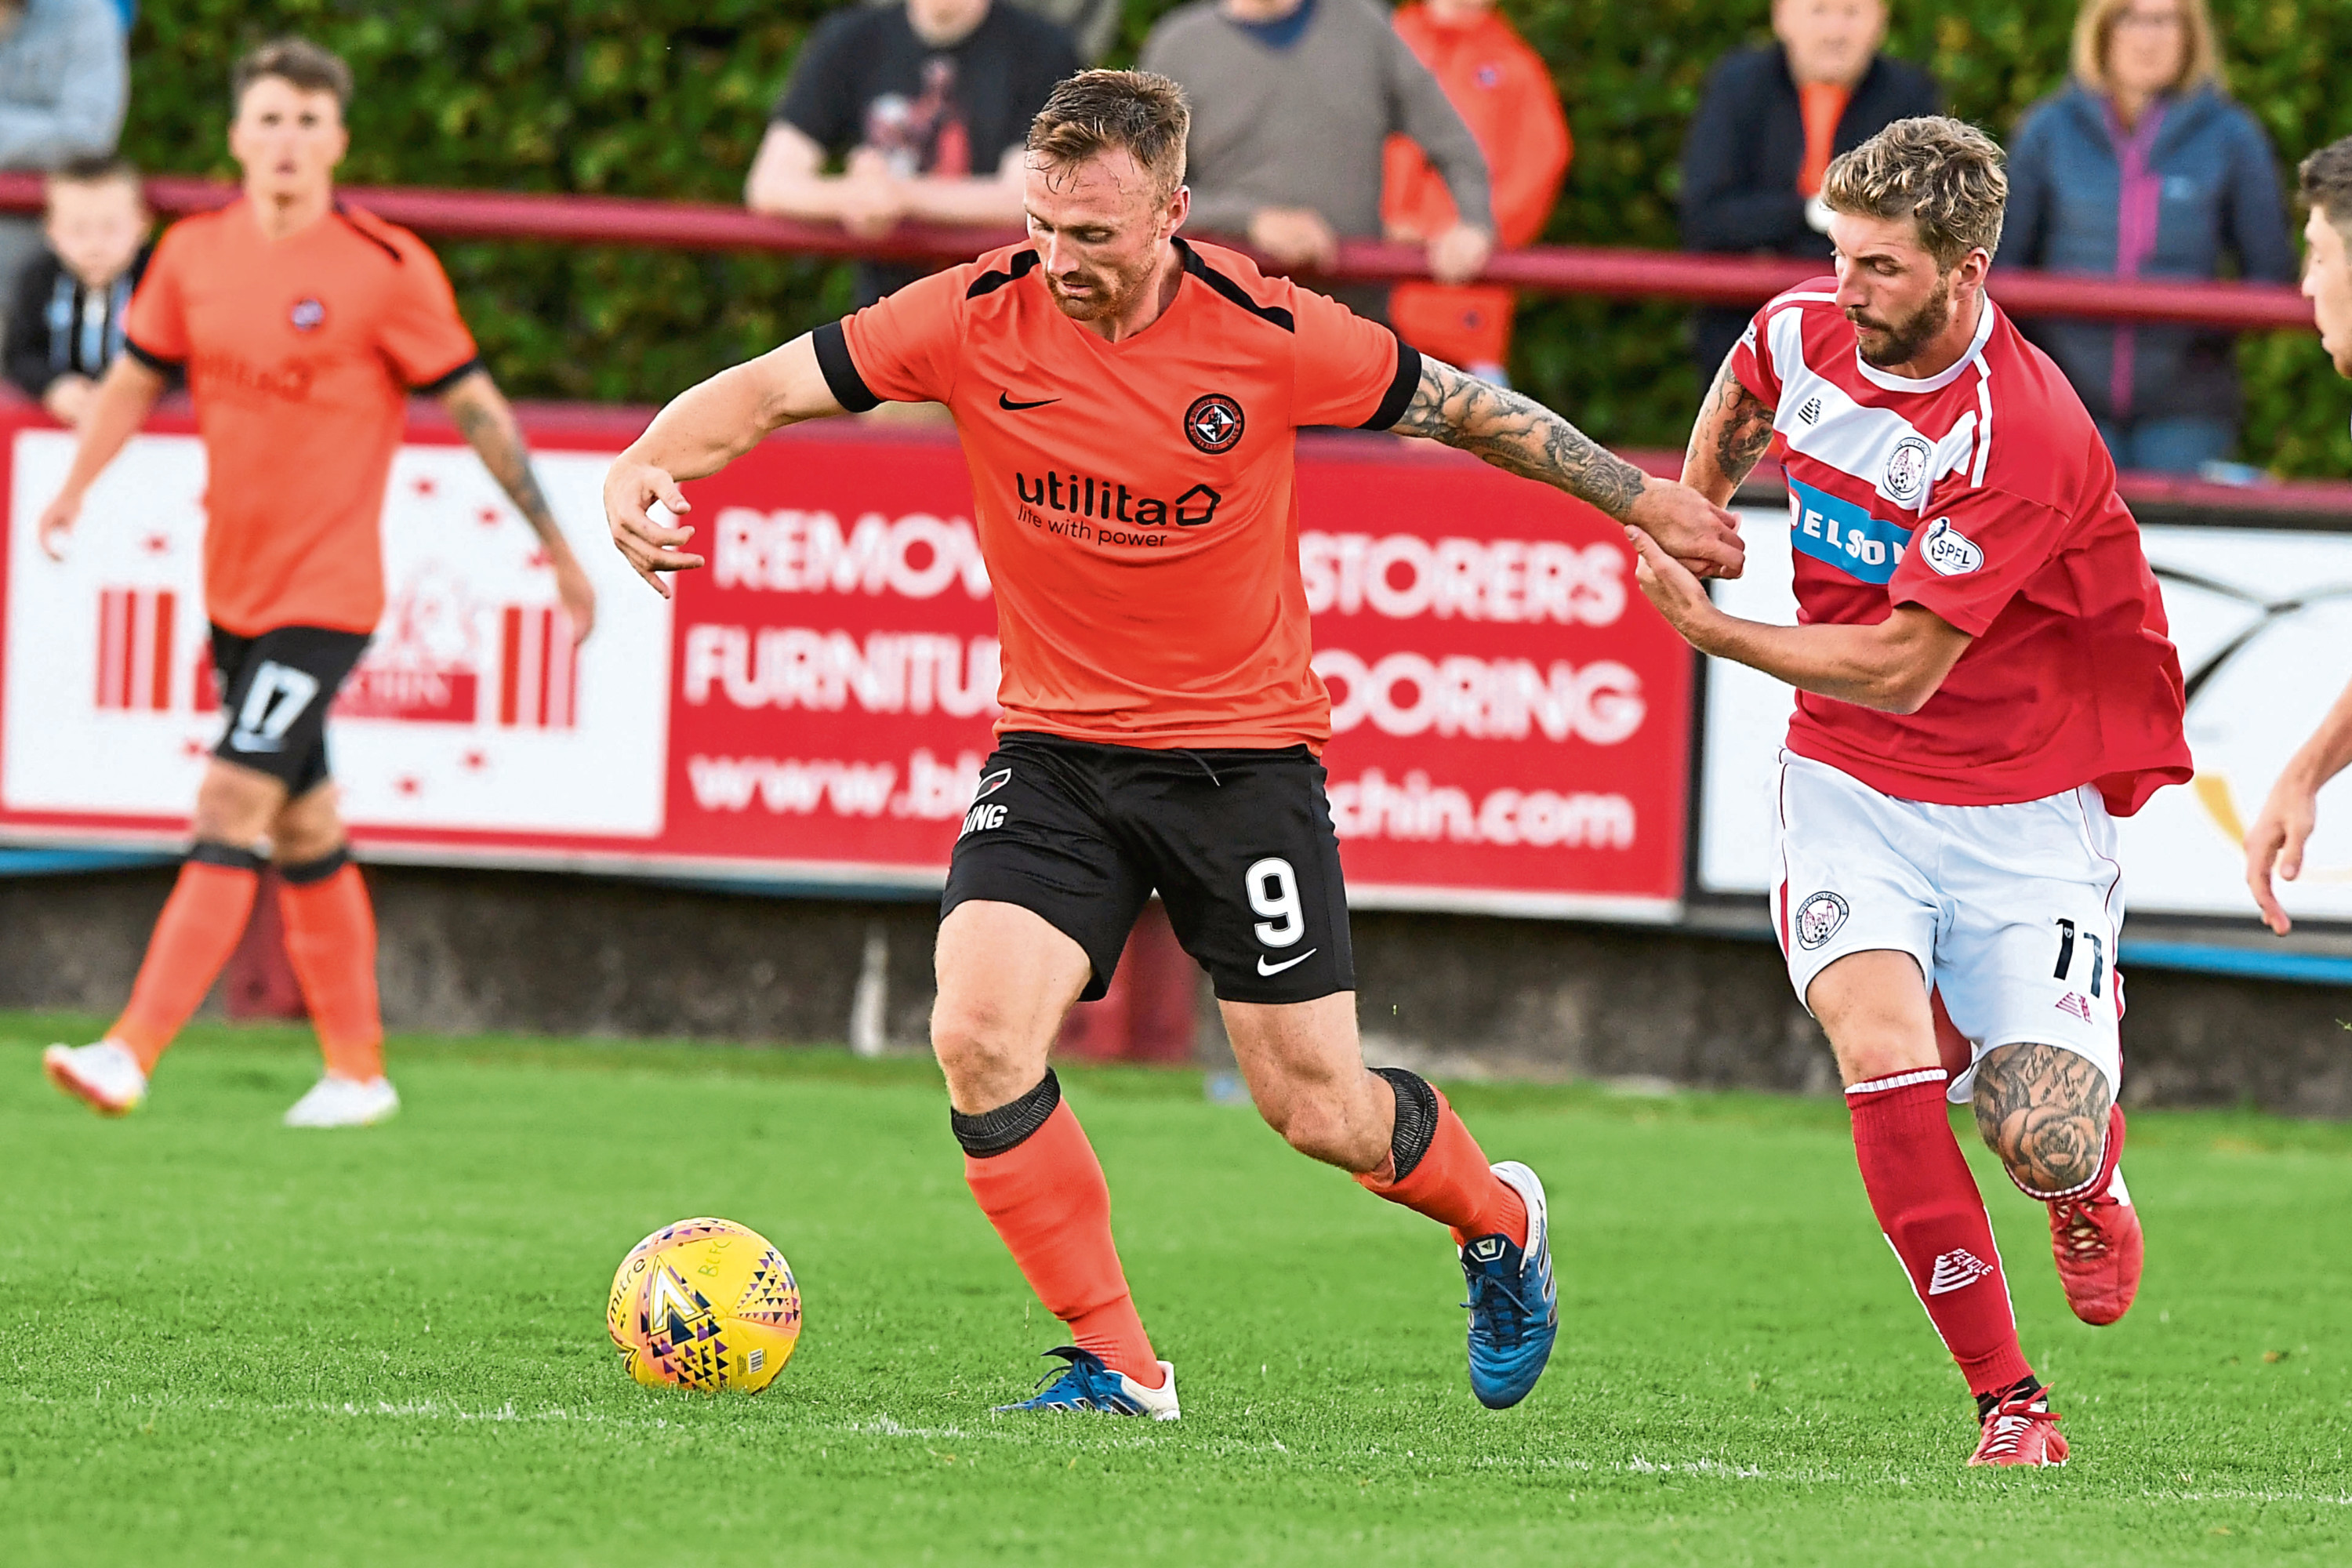 Craig Curran impressed on his Dundee United debut, leading the line for Csaba Laszlo's side in their 2-0 victory over Brechin on Tuesday night.